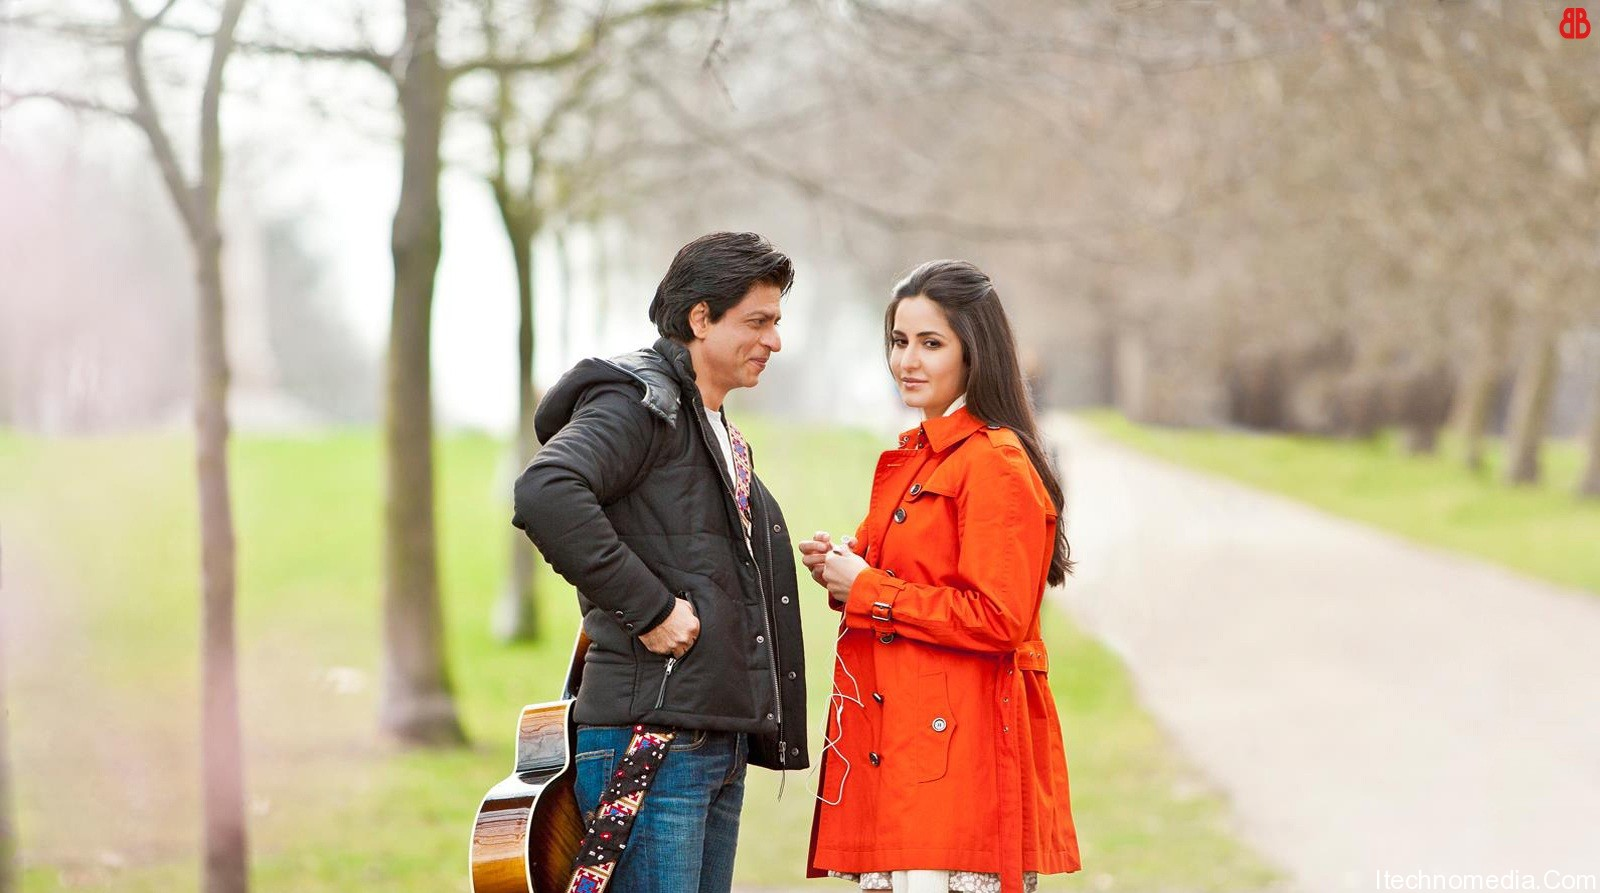 http://3.bp.blogspot.com/-5ajF8f2zBOM/UFsakm5_FiI/AAAAAAAACbo/_YnaxBz5uho/s1600/Yash-Chopras-Next-Untitled-Movie-Shahrukh-Khan-Katrina-Kaif-WideScreen-HD-Wallpaper-06.jpg